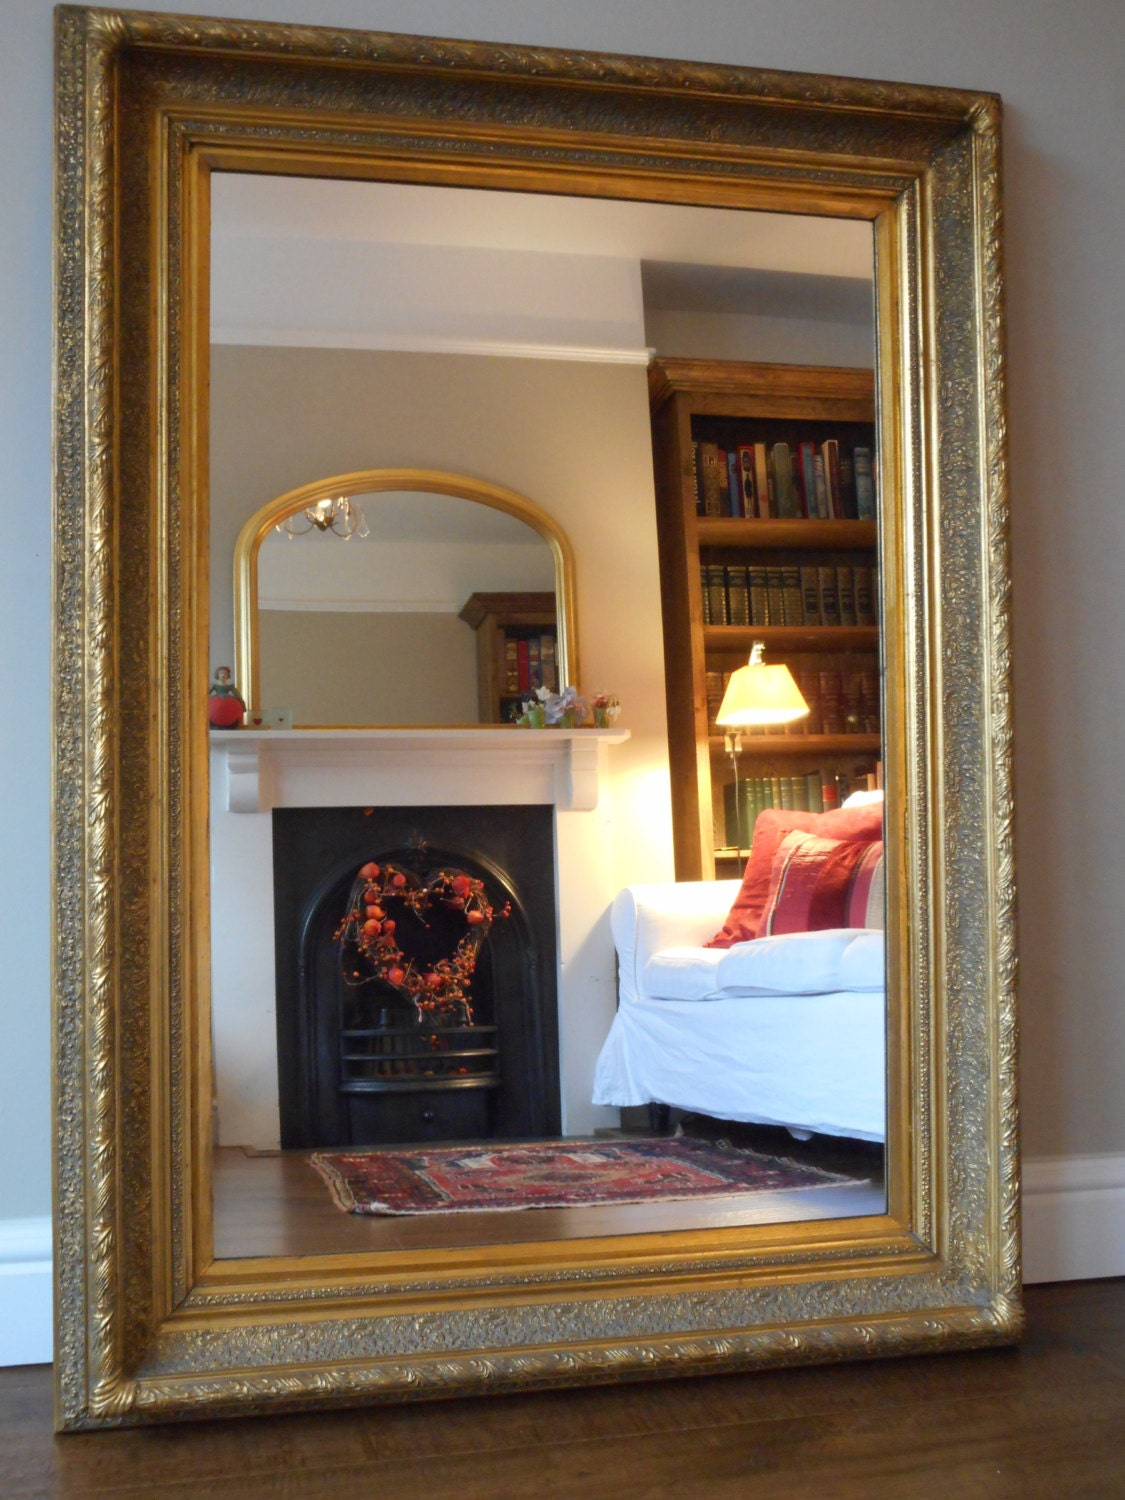 Antique style large gilt frame wall mirror by consort pictures for Antique style wall mirror